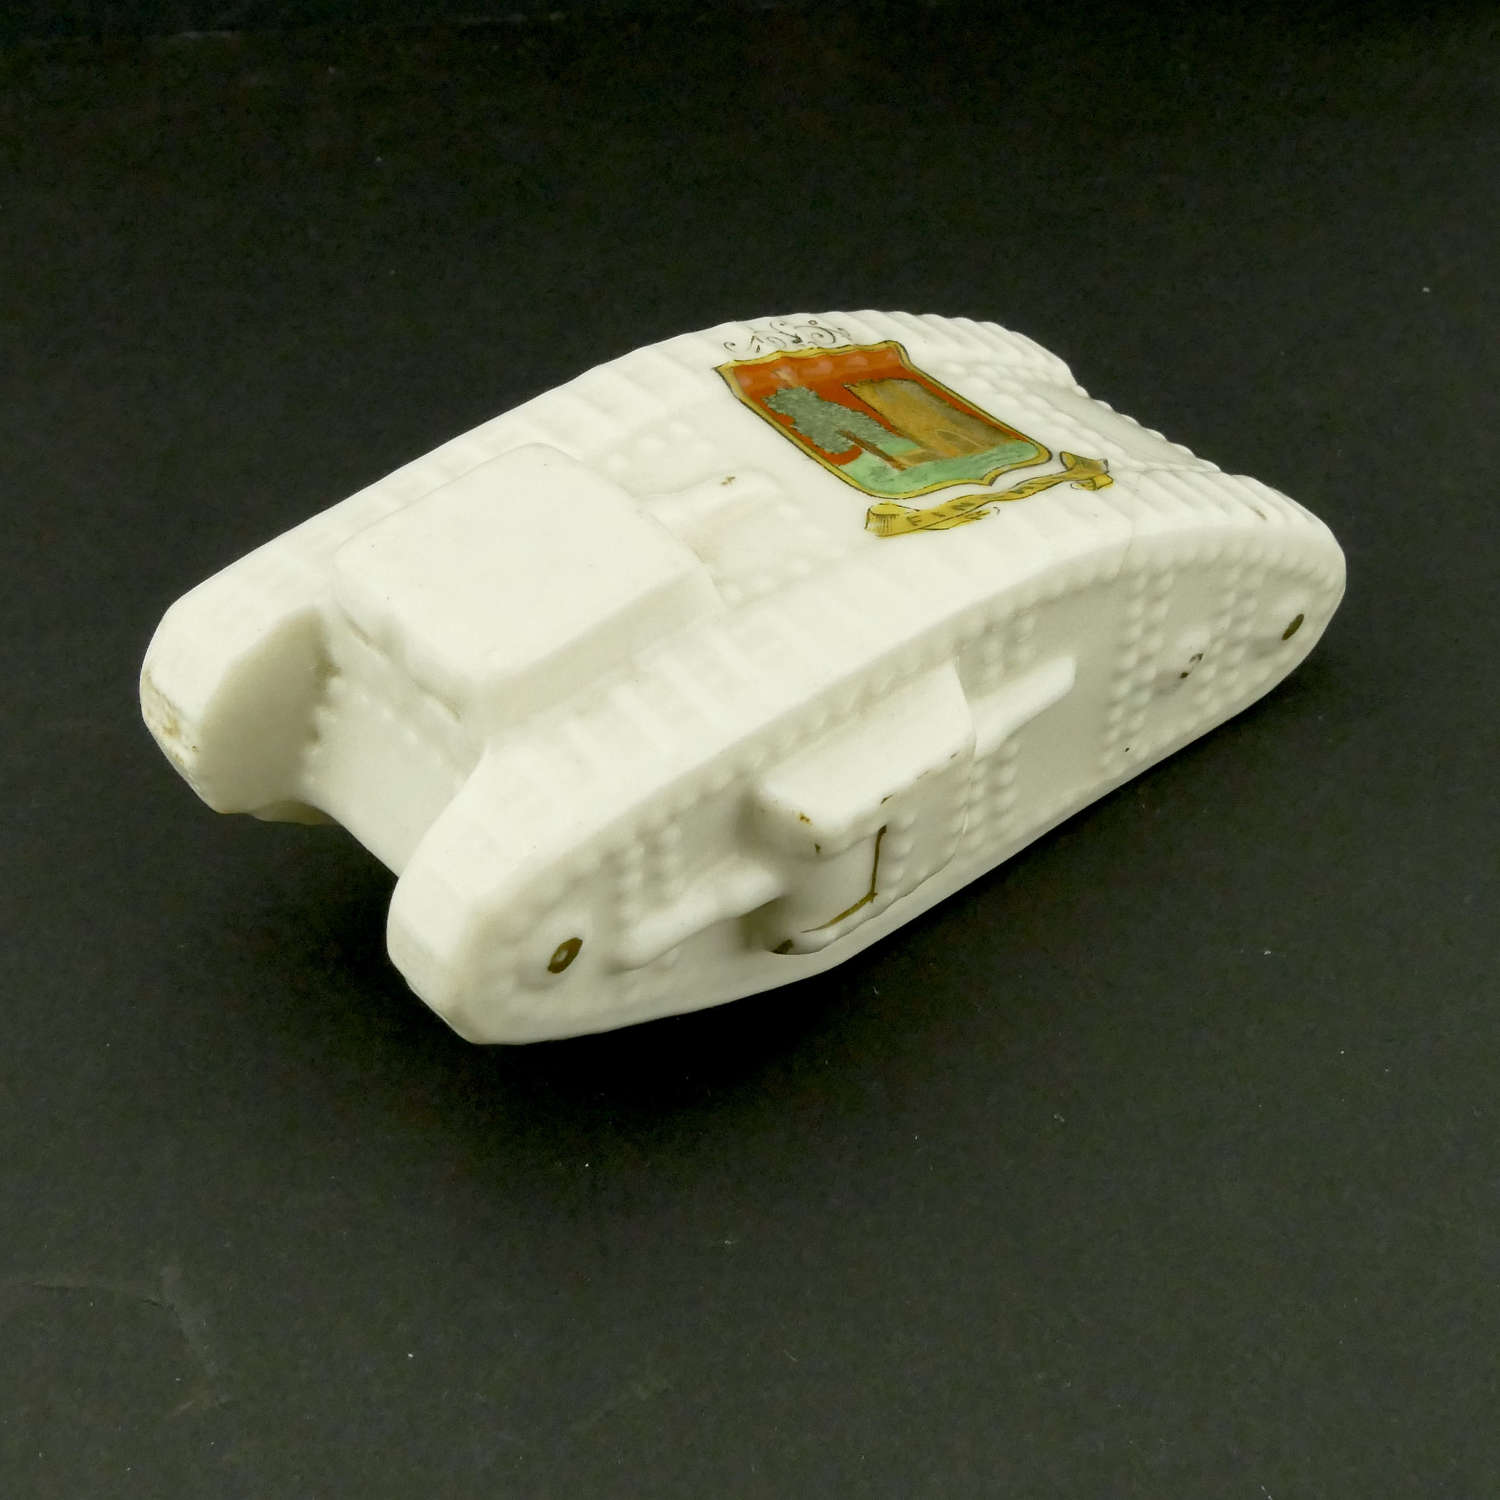 WW1 crested china tank - Finchley